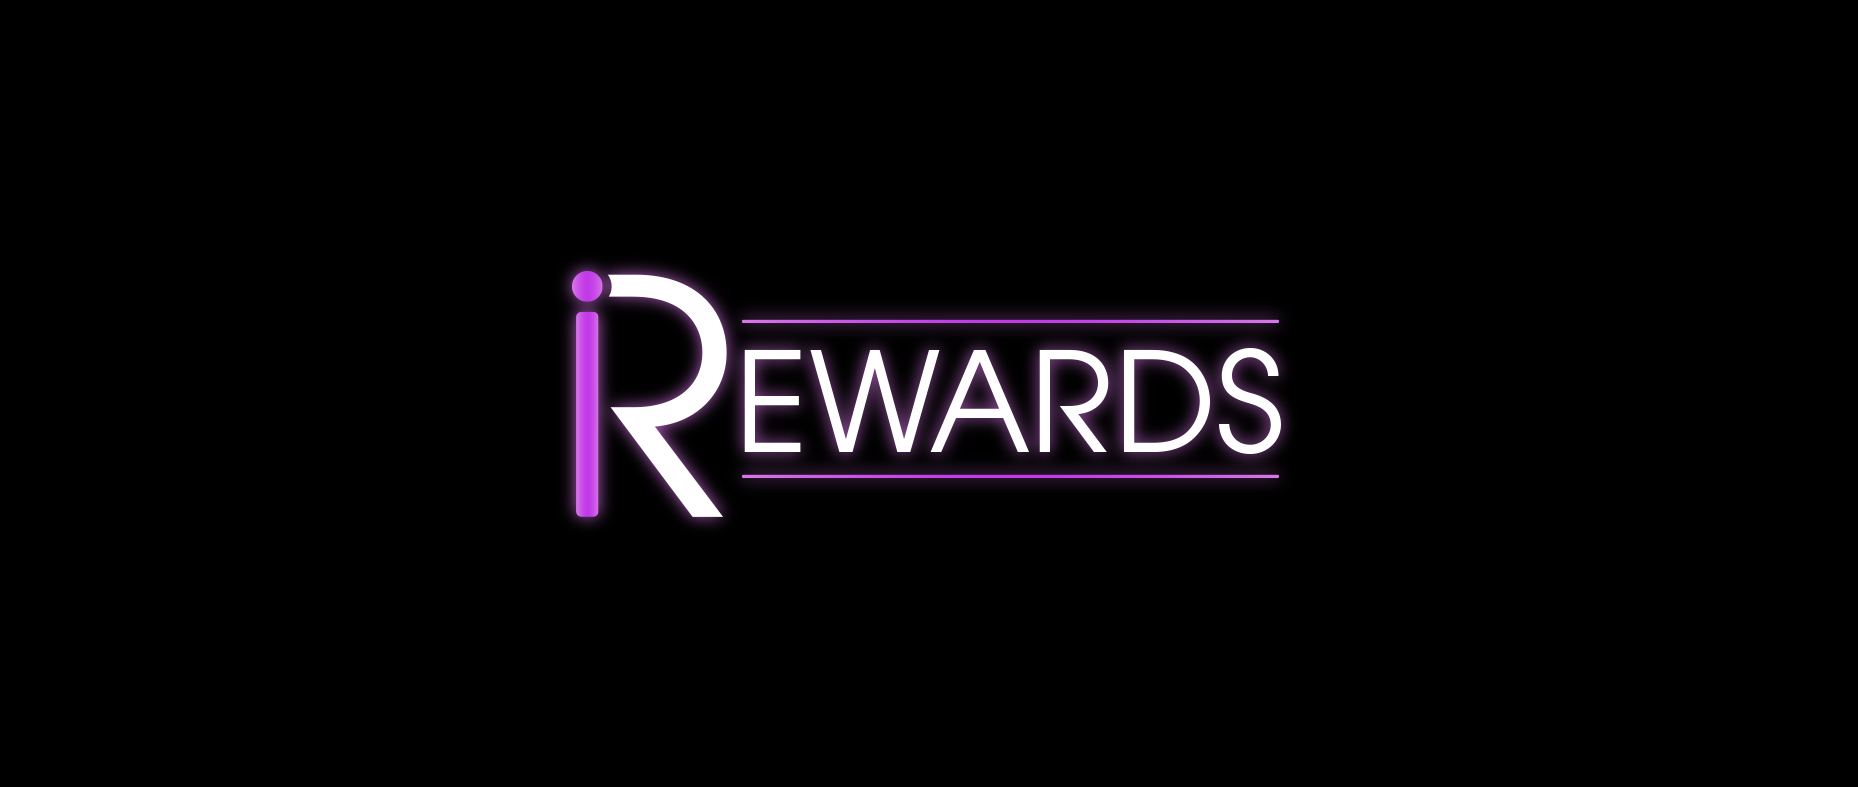 Casino reward : how to receive one ?